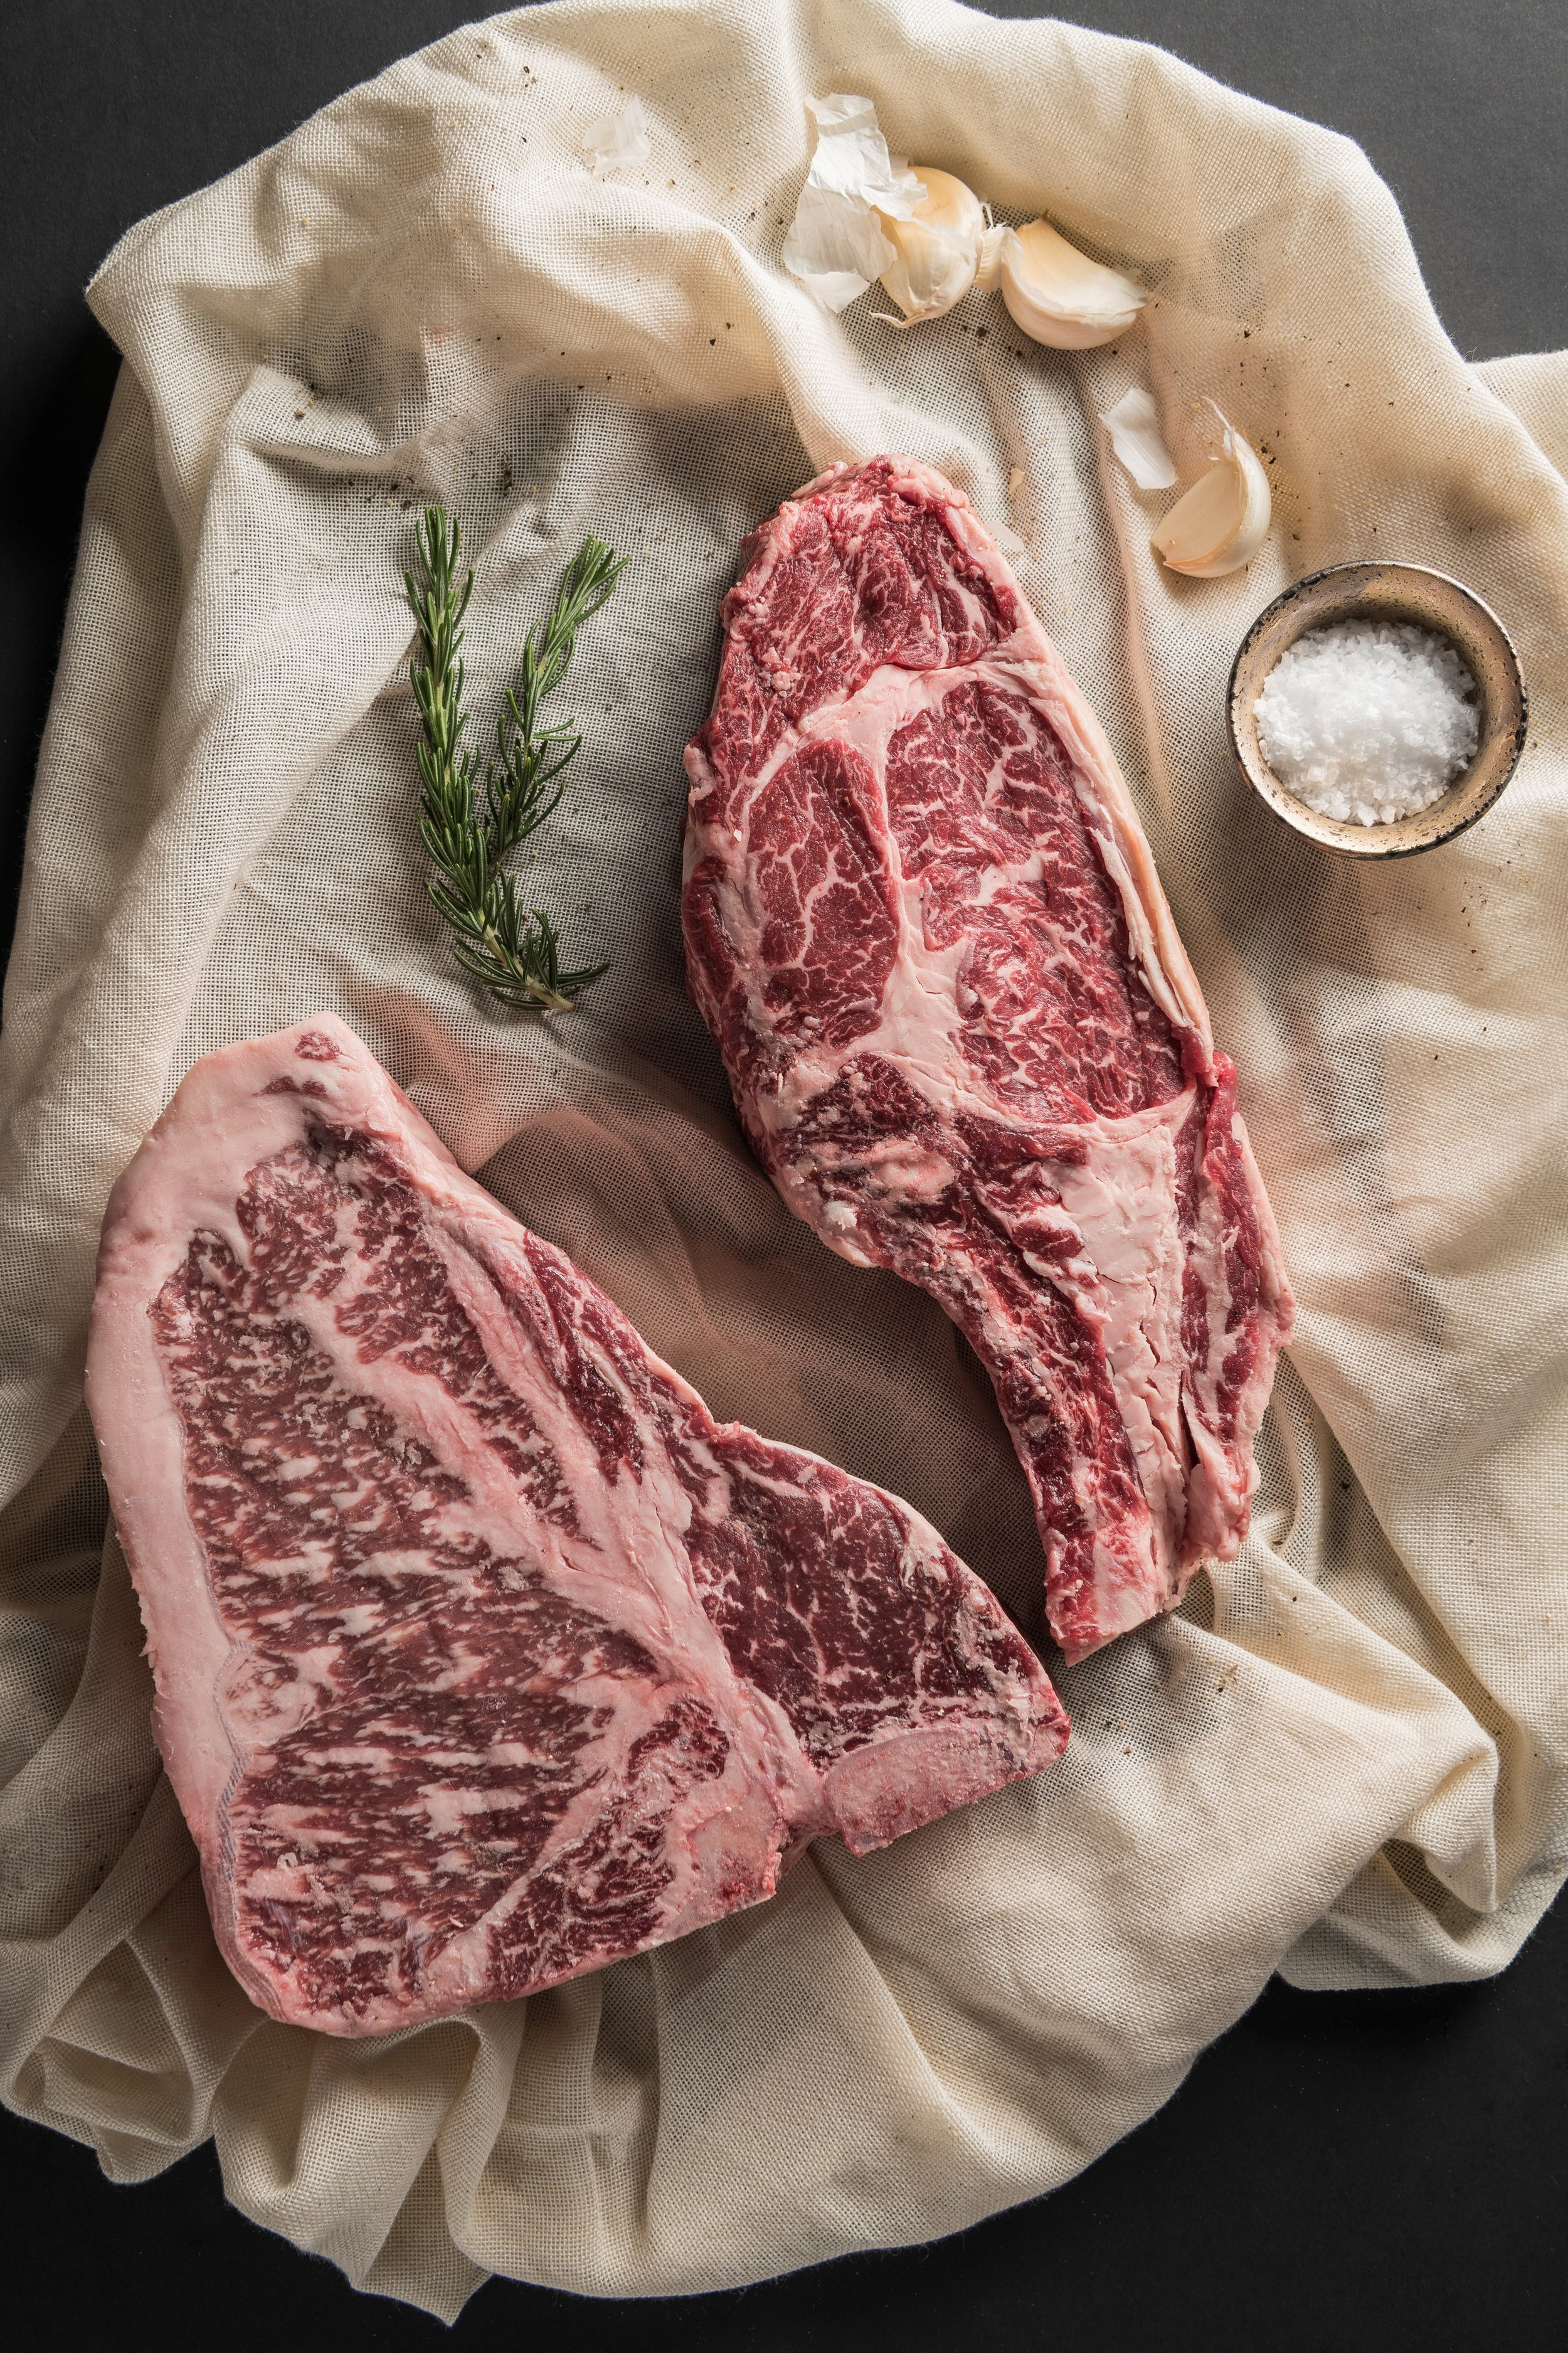 Mayura Station Full BlooD Wagyu - Mayura Station is located in the Limestone Coast, heart of some of the best farming country in Australia, ideal for producing the ultimate quality, award winning Wagyu beef. Mayura Station is situated in an area perfectly sculptured with rich healthy rolling hills and fertile soils. Combined with moderate climate, sparkling clean water, favourable and reliable rainfall. Its 100% Full-blood Wagyu cattle were imported into Australia in 1997 and just like thoroughbred horses, the herd's ancestry, bloodlines and pedigree are a major distinguishing factor in the quality of our Full-blood Wagyu beef.